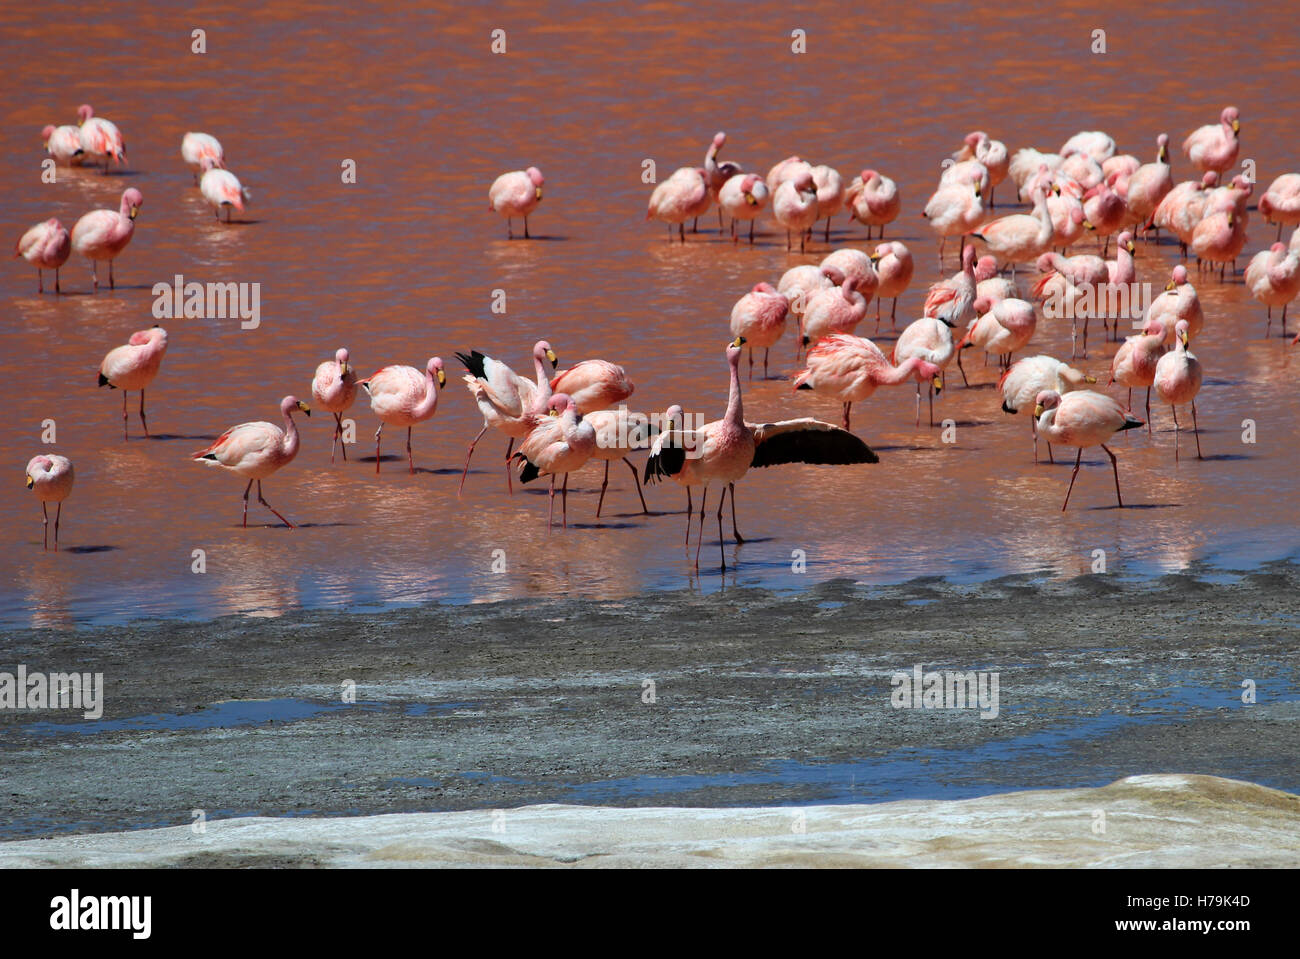 James flamingos, phoenicoparrus jamesi, also known as the puna flamingo, are populated in high altitudes of andean - Stock Image